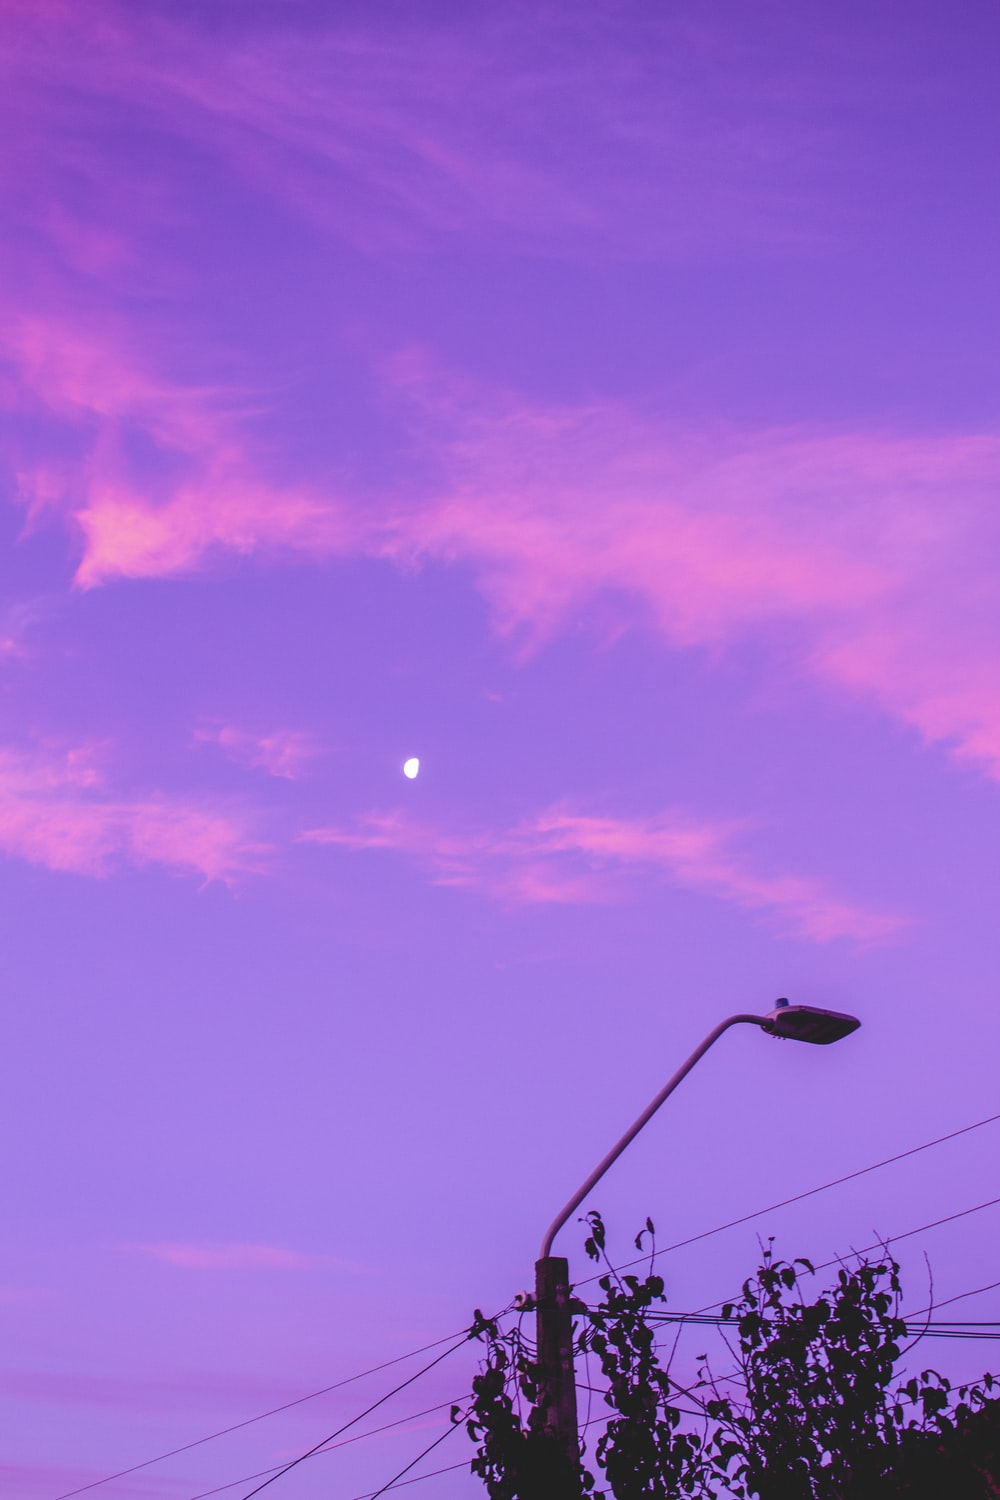 20+ Purple Aesthetic Pictures   Download Free Images on Unsplash